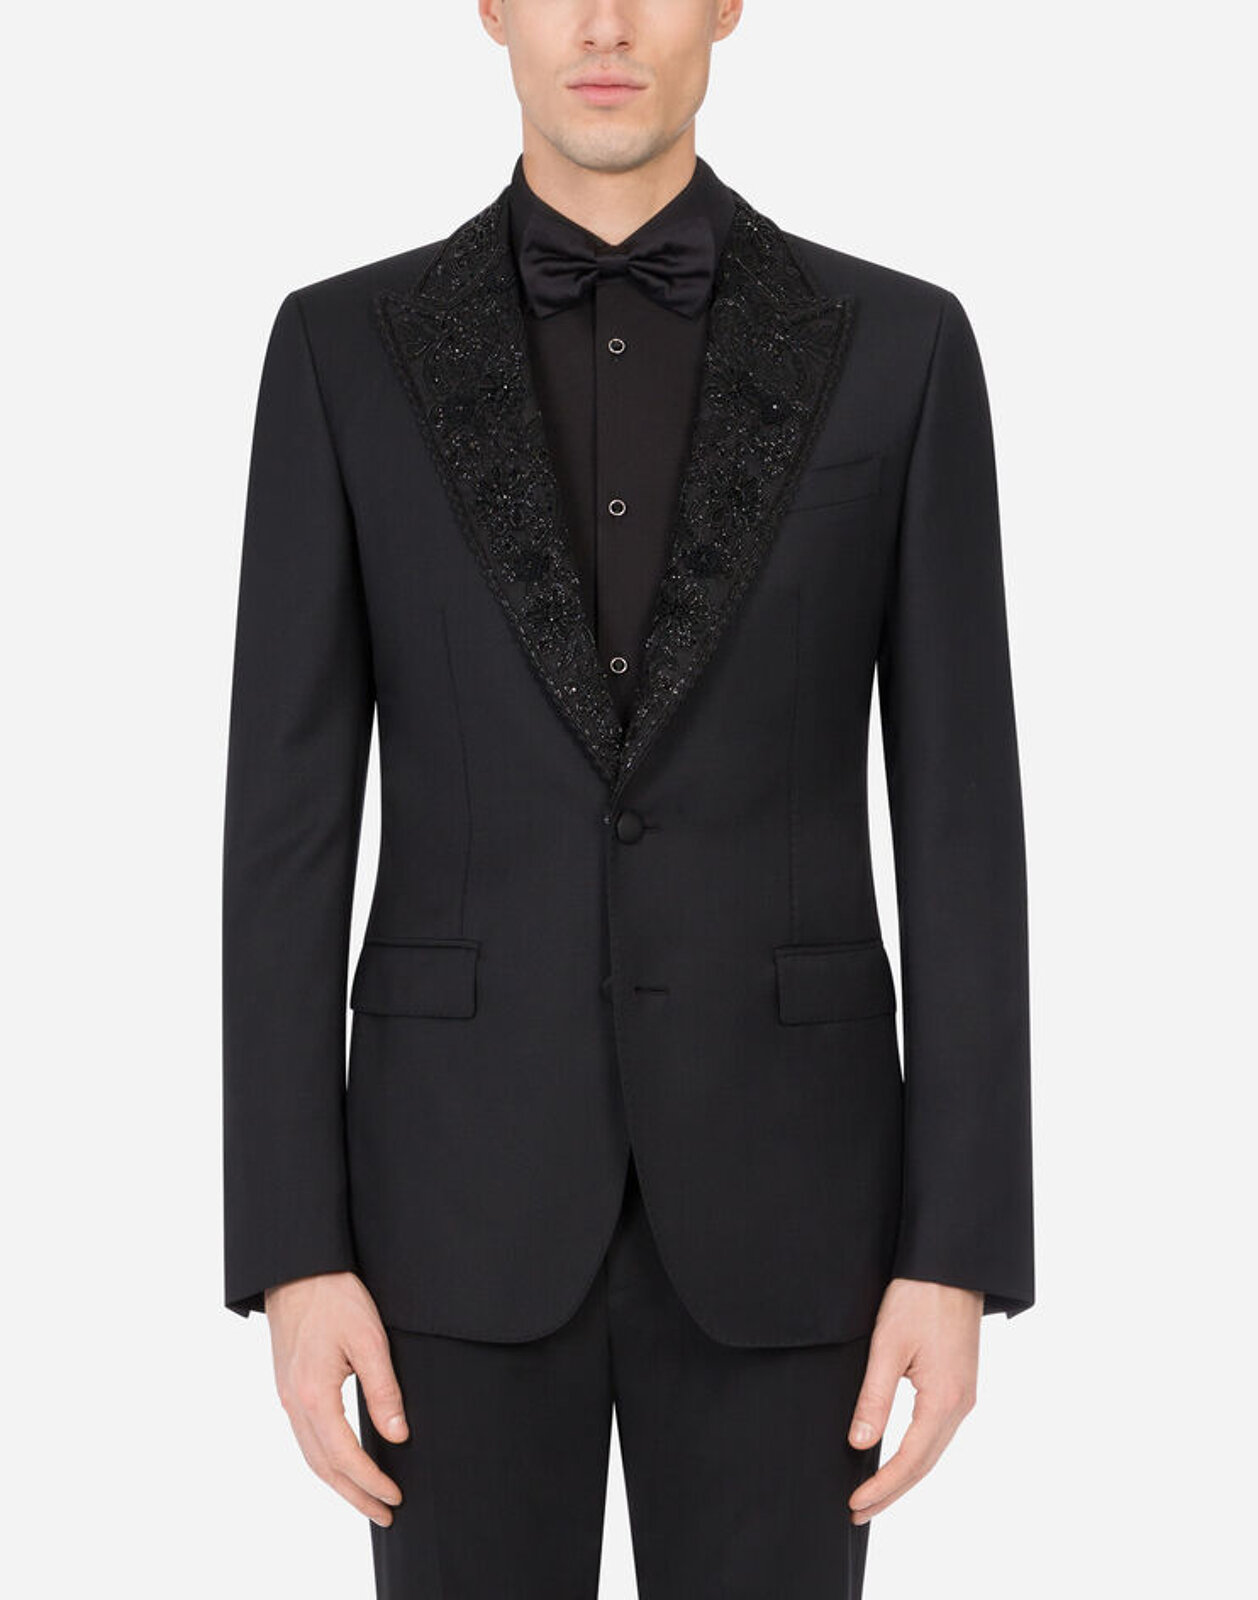 Taormina Tuxedo Jacket In Wool With Embroidery - Dolce & Gabbana